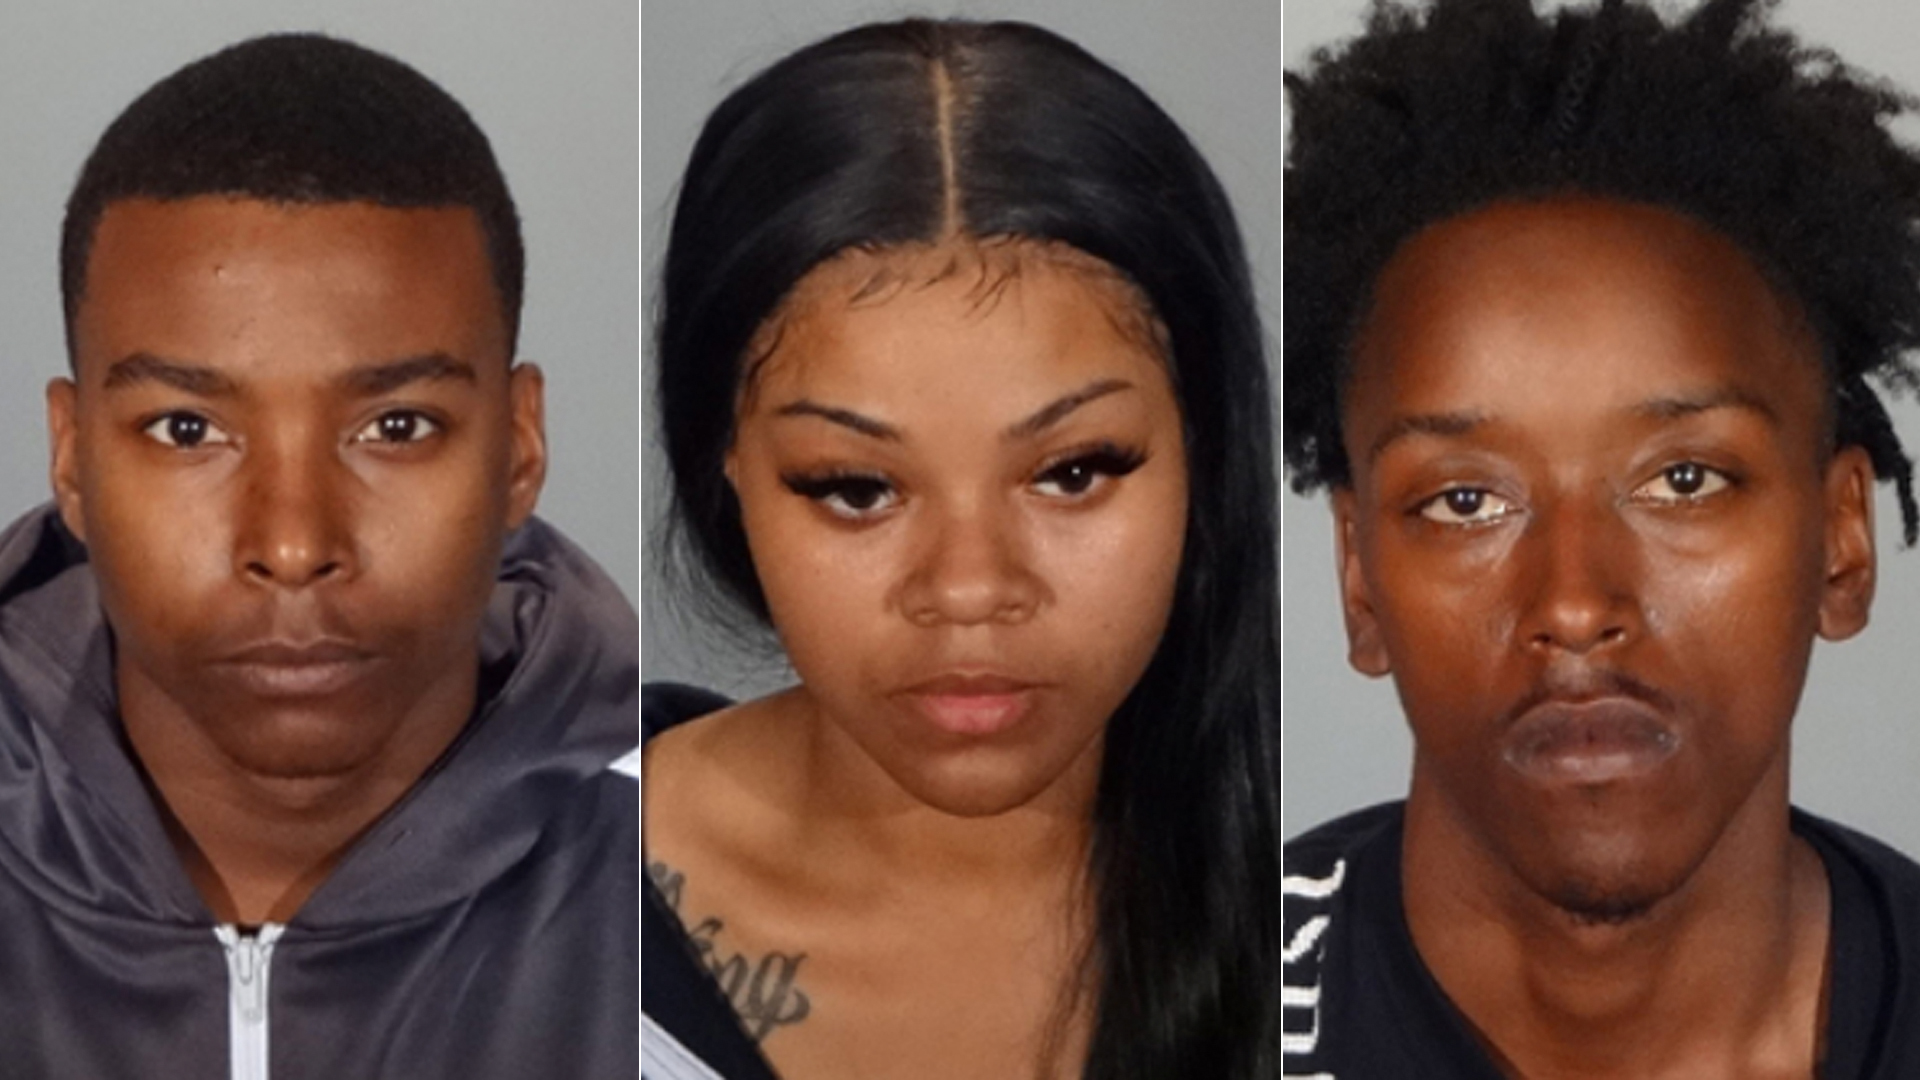 (Left to right) Arthur Reddick, Kevionta Jarvis and Terrell Leflore are shown in photos released by the Glendale Police Department on Oct. 23, 2020.